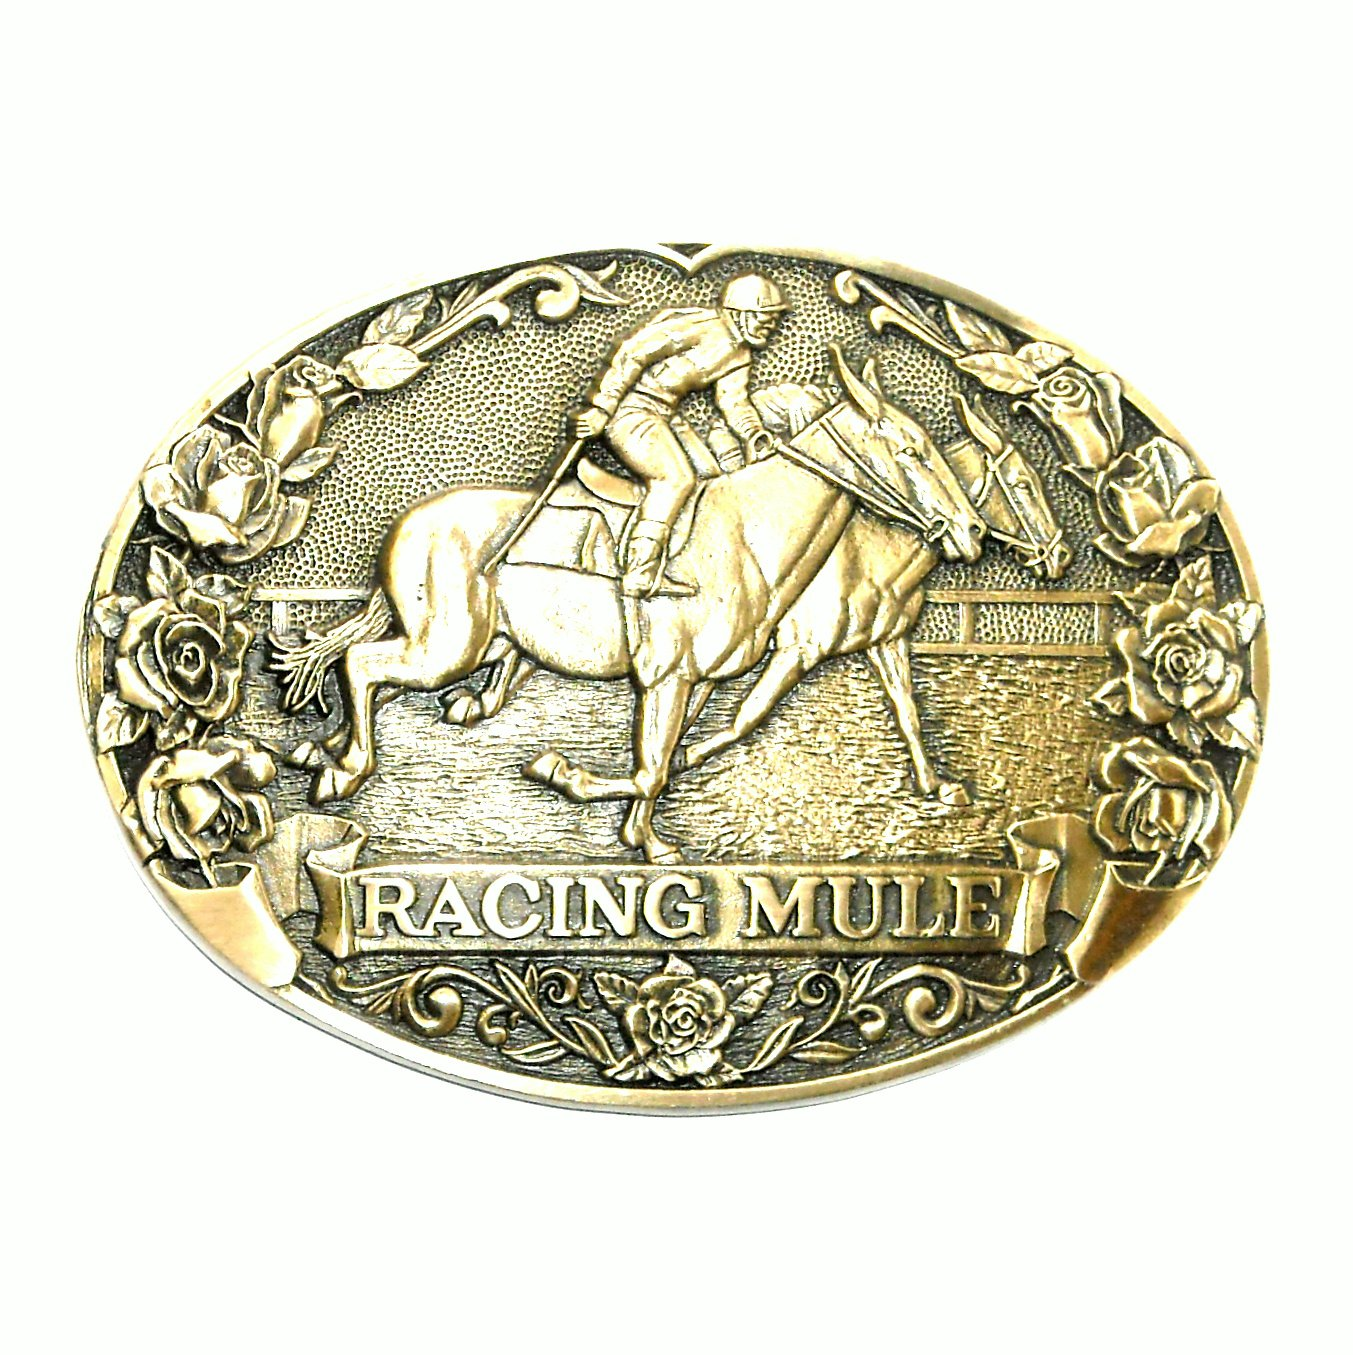 Mule Racing Tony Lama First Edition Vintage Brass Belt Buckle